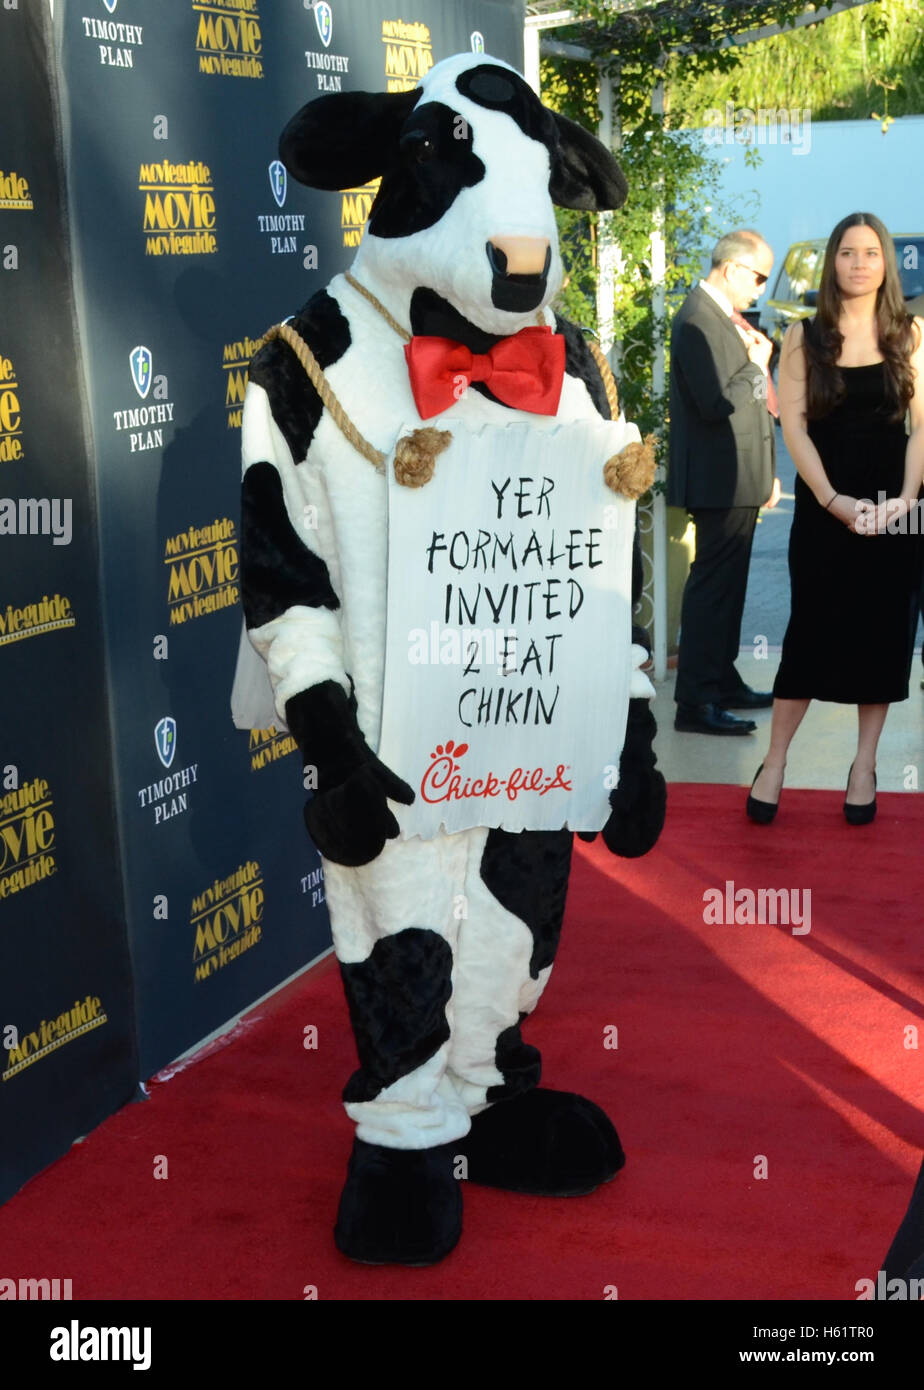 Chick Fil A Stock Name : chick, stock, Fotos, Imágenes, Stock, Alamy